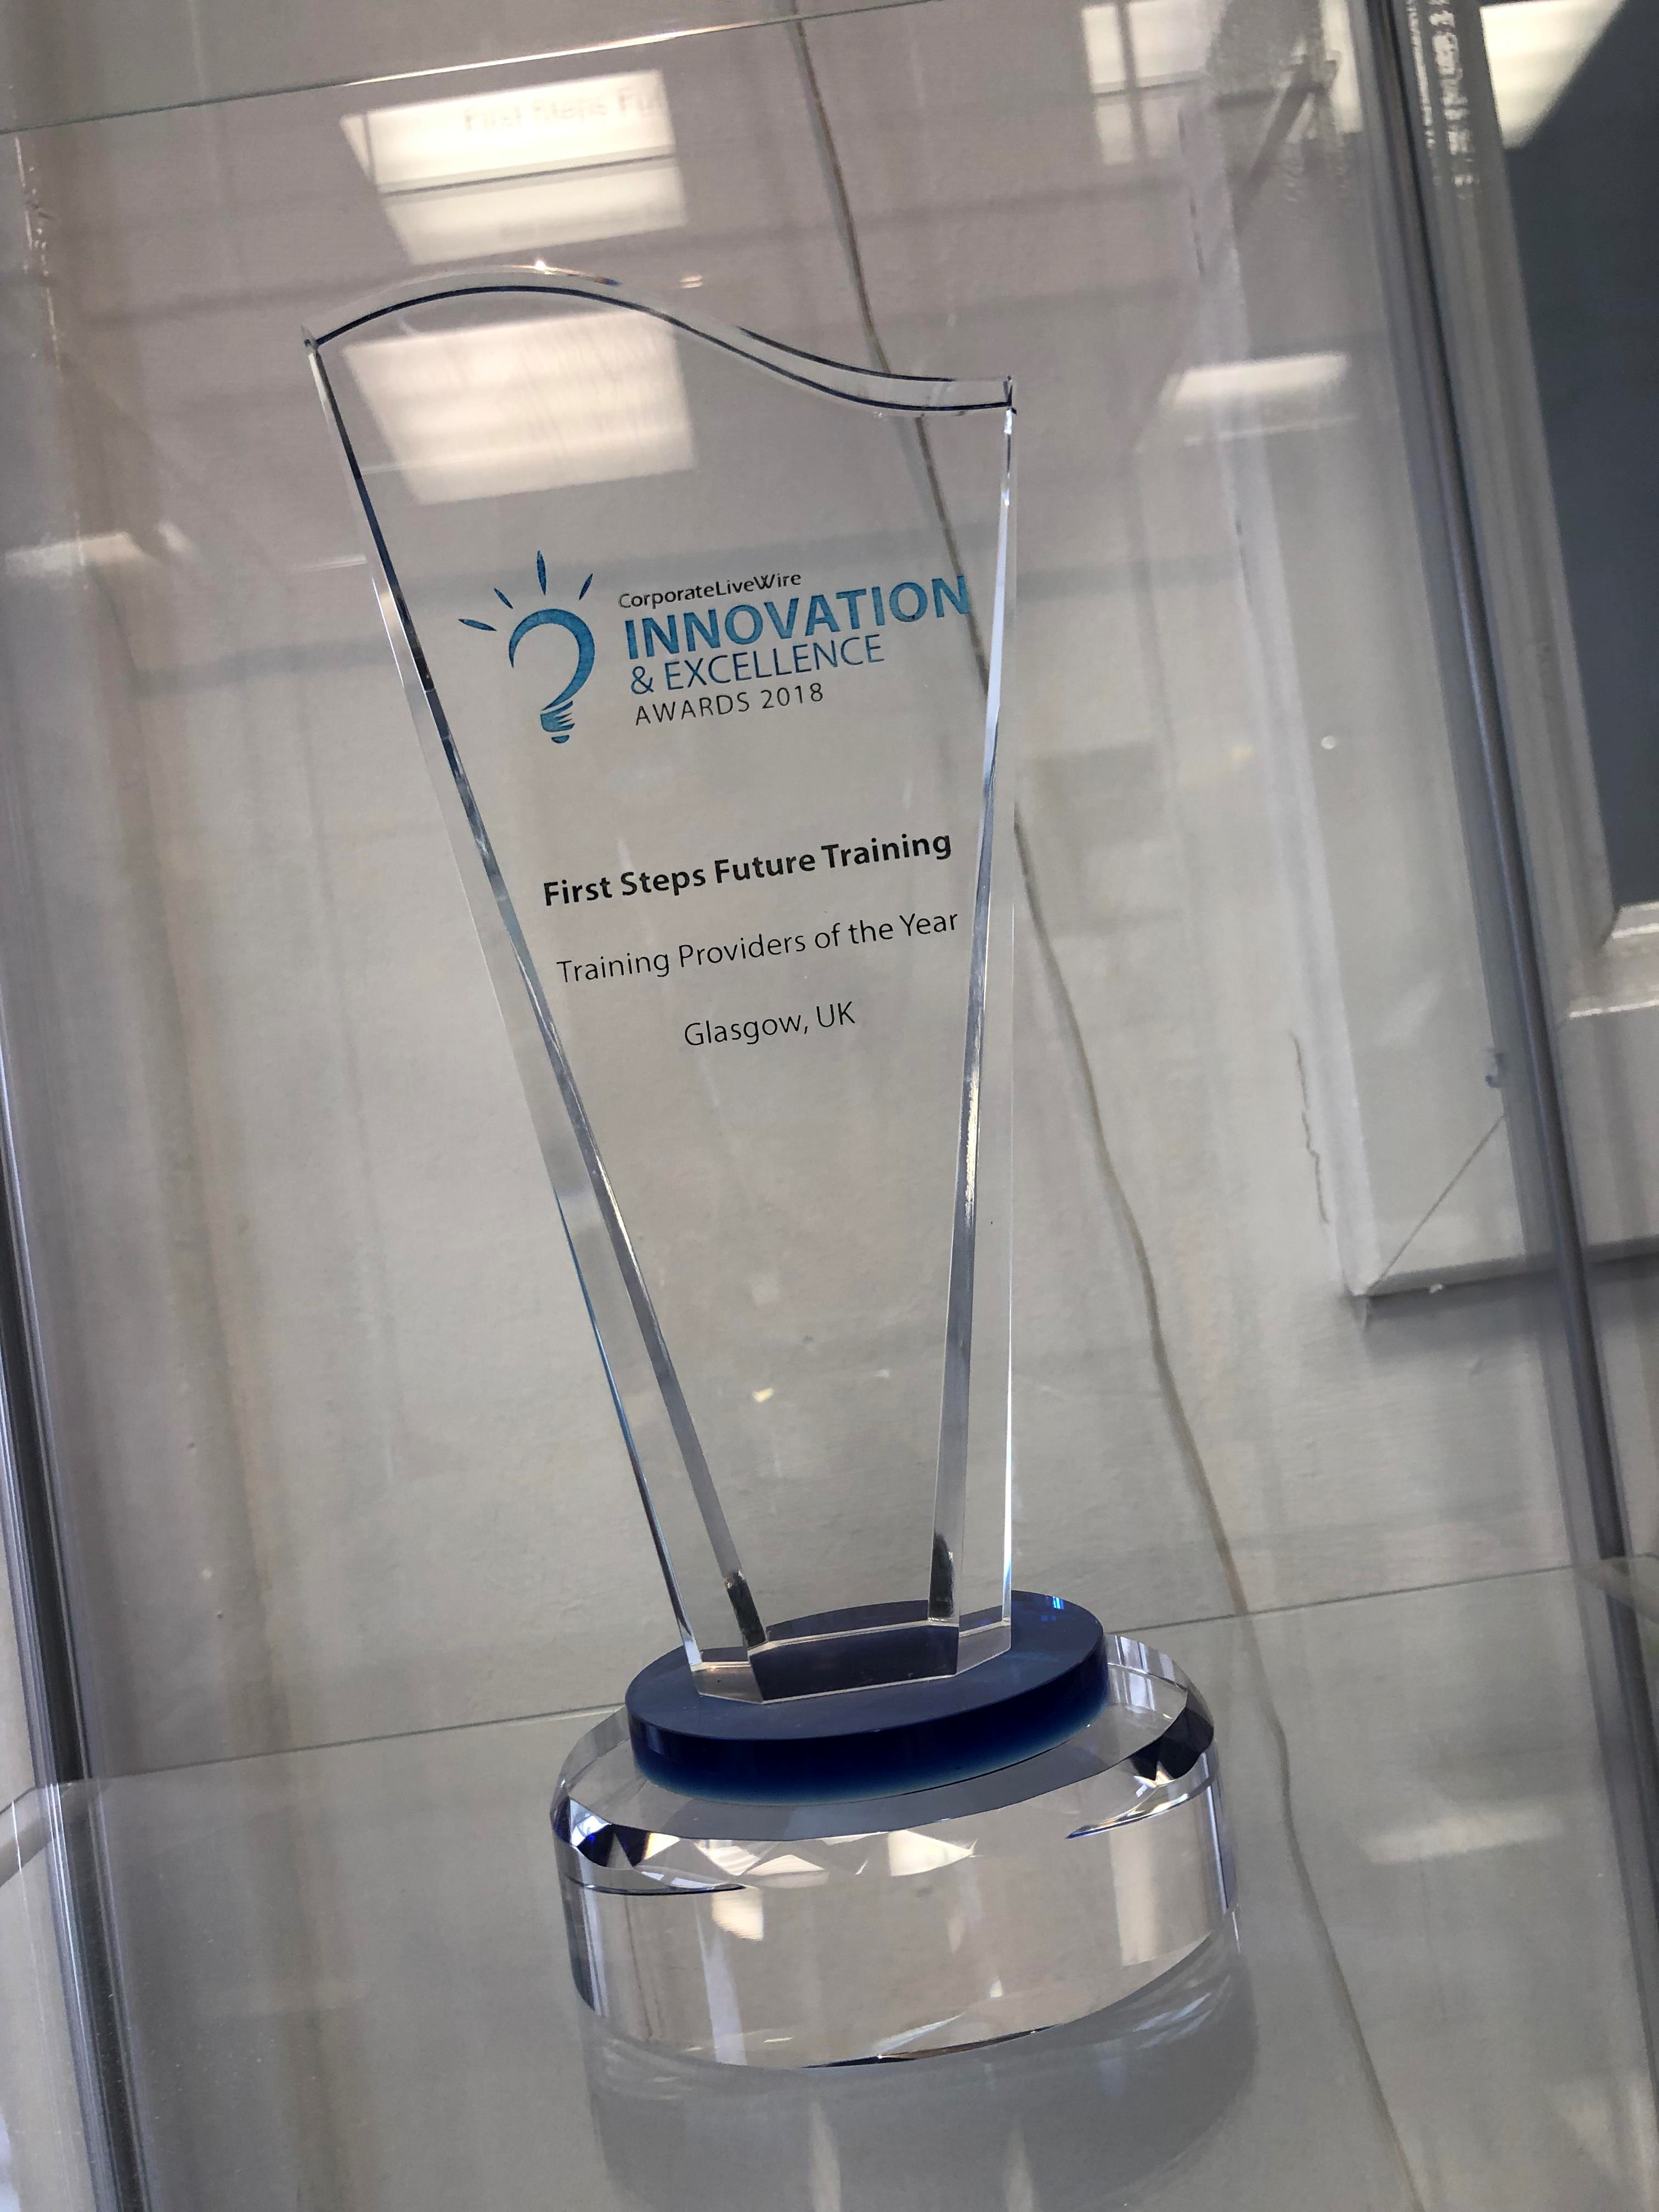 Innovation & Excellence Award 2018